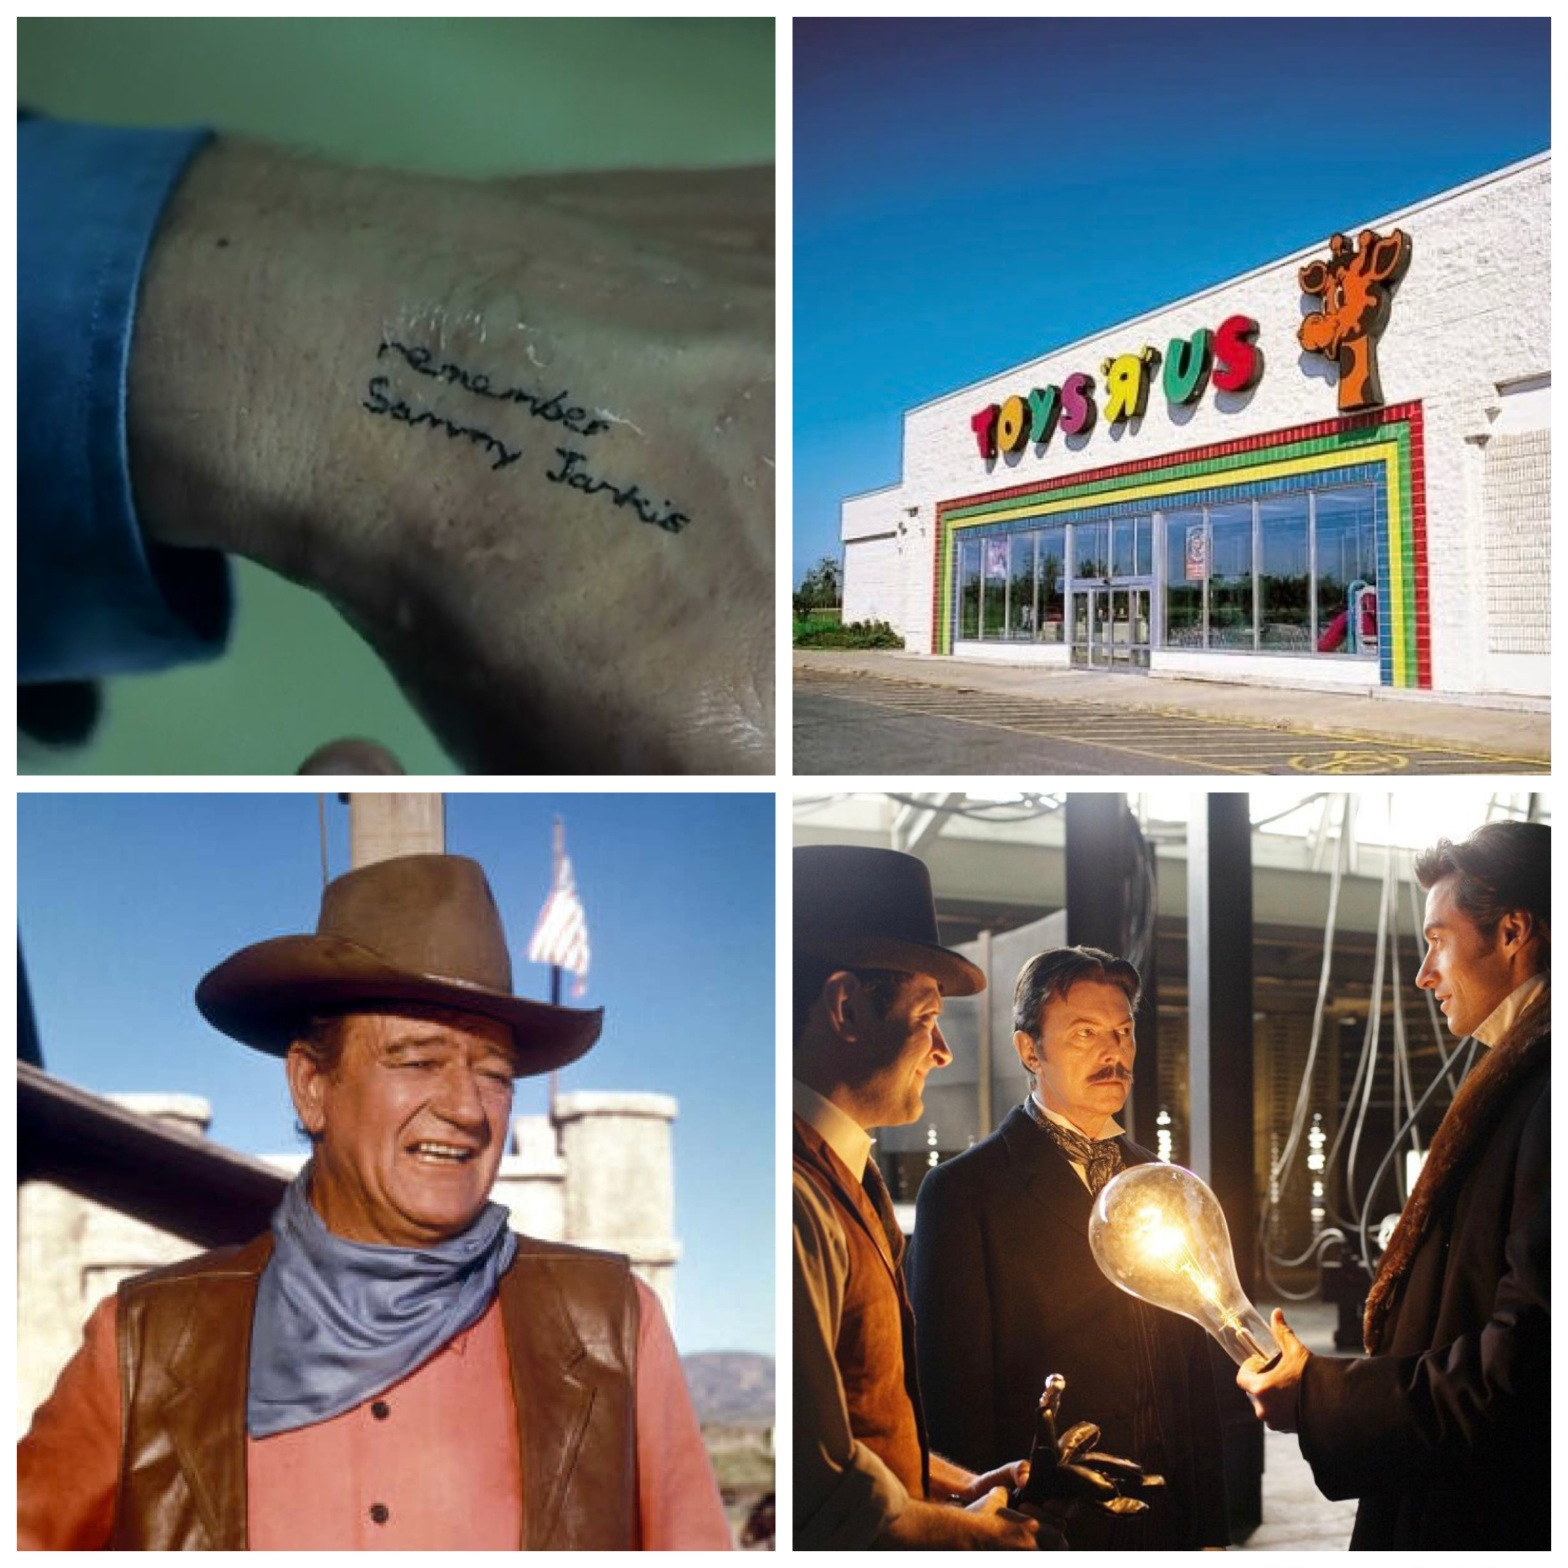 Memento's Remember Sammy Jankis. A vacant Toys R Us. John Wayne. Andy Serkis, David Bowie, and Hugh Jackman on the set of The Prestige. All of this will make sense when you listen to this week's episode.